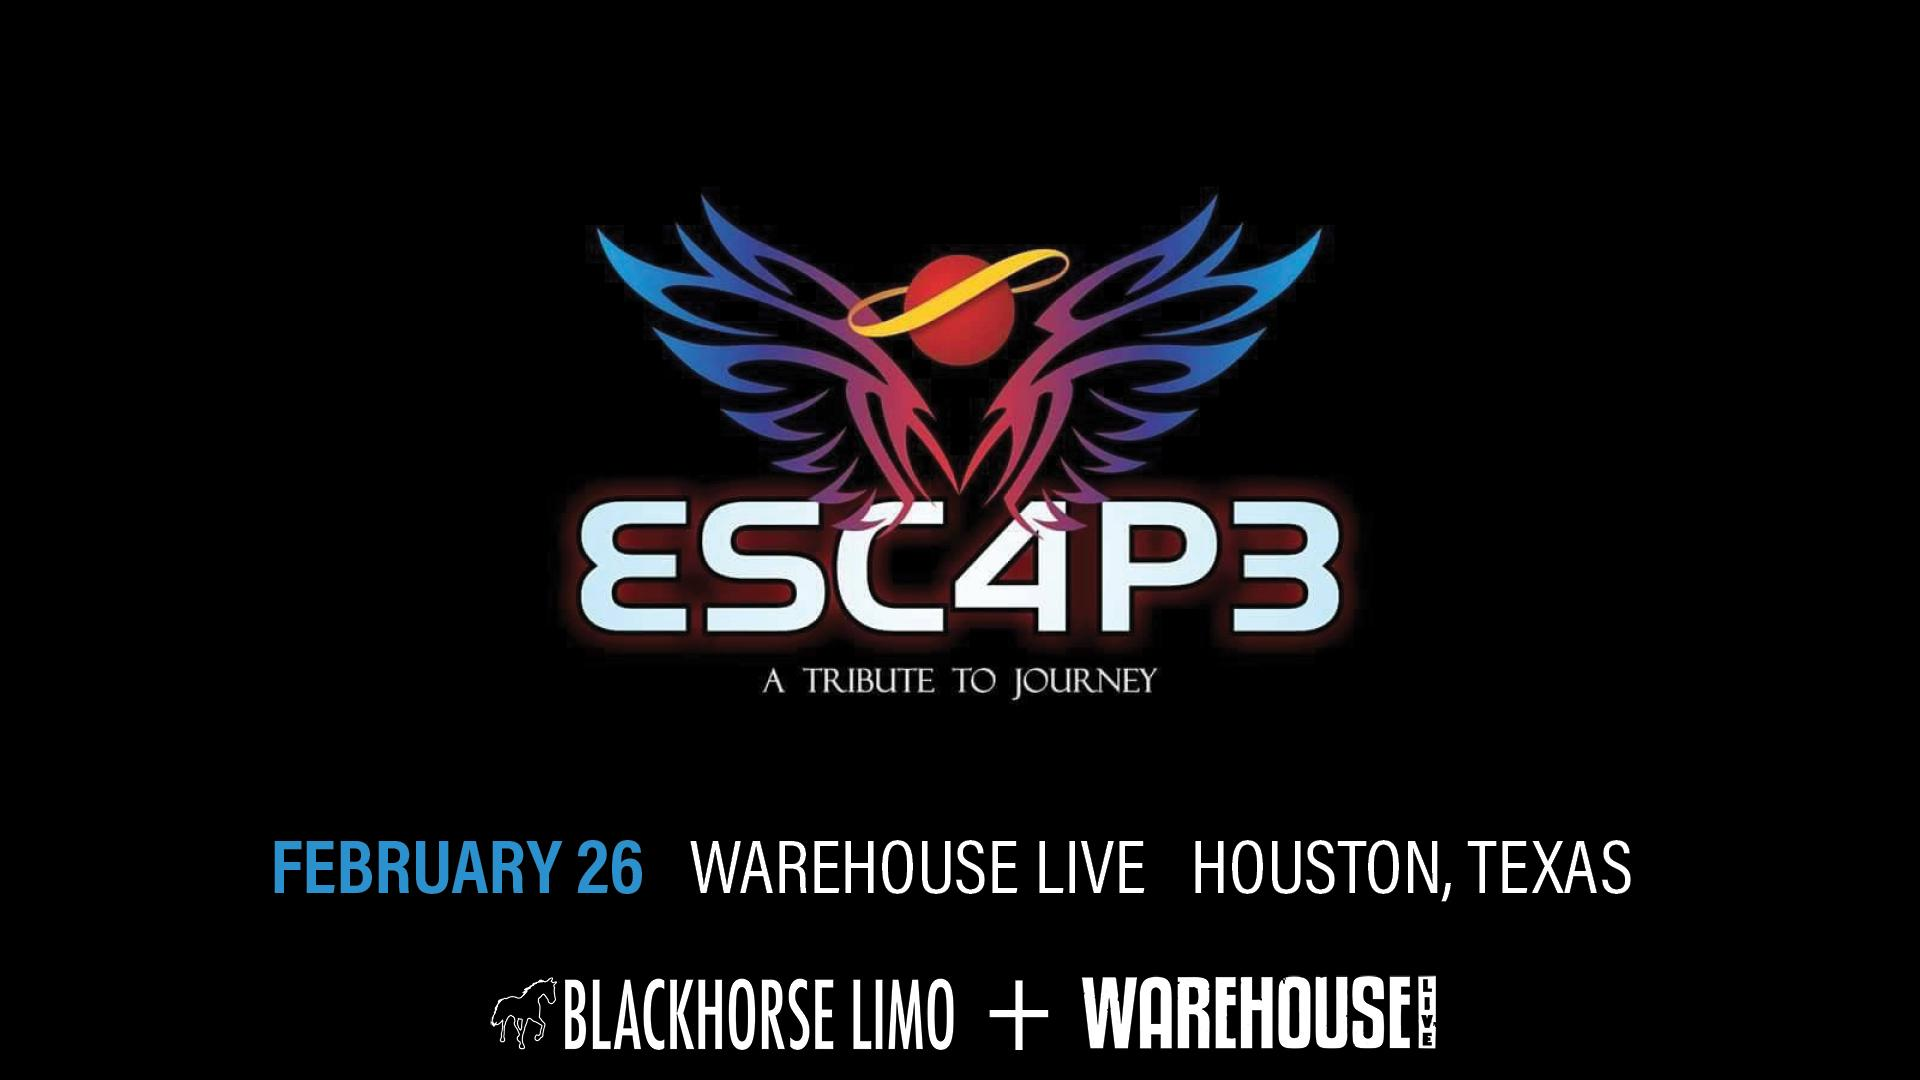 ESCAPE (A TRIBUTE TO JOURNEY) / TEXAS EAGLES (TRIBUTE TO THE EAGLES)